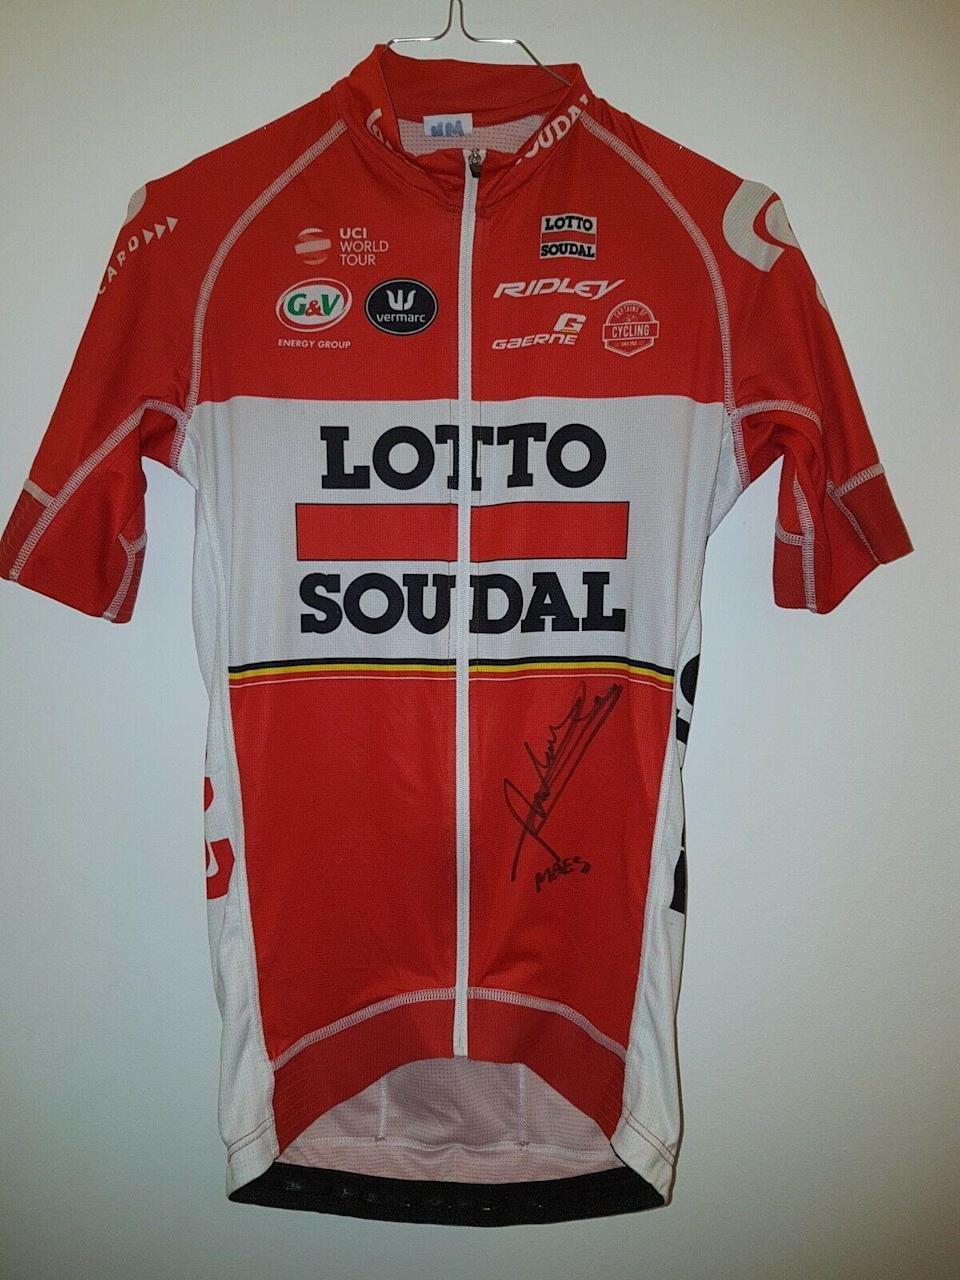 A Nikolas Maes-signed Lotto Soudal jersey – worn by him at the 2017 Prudential RideLondon-Surrey Classic – for sale on eBay